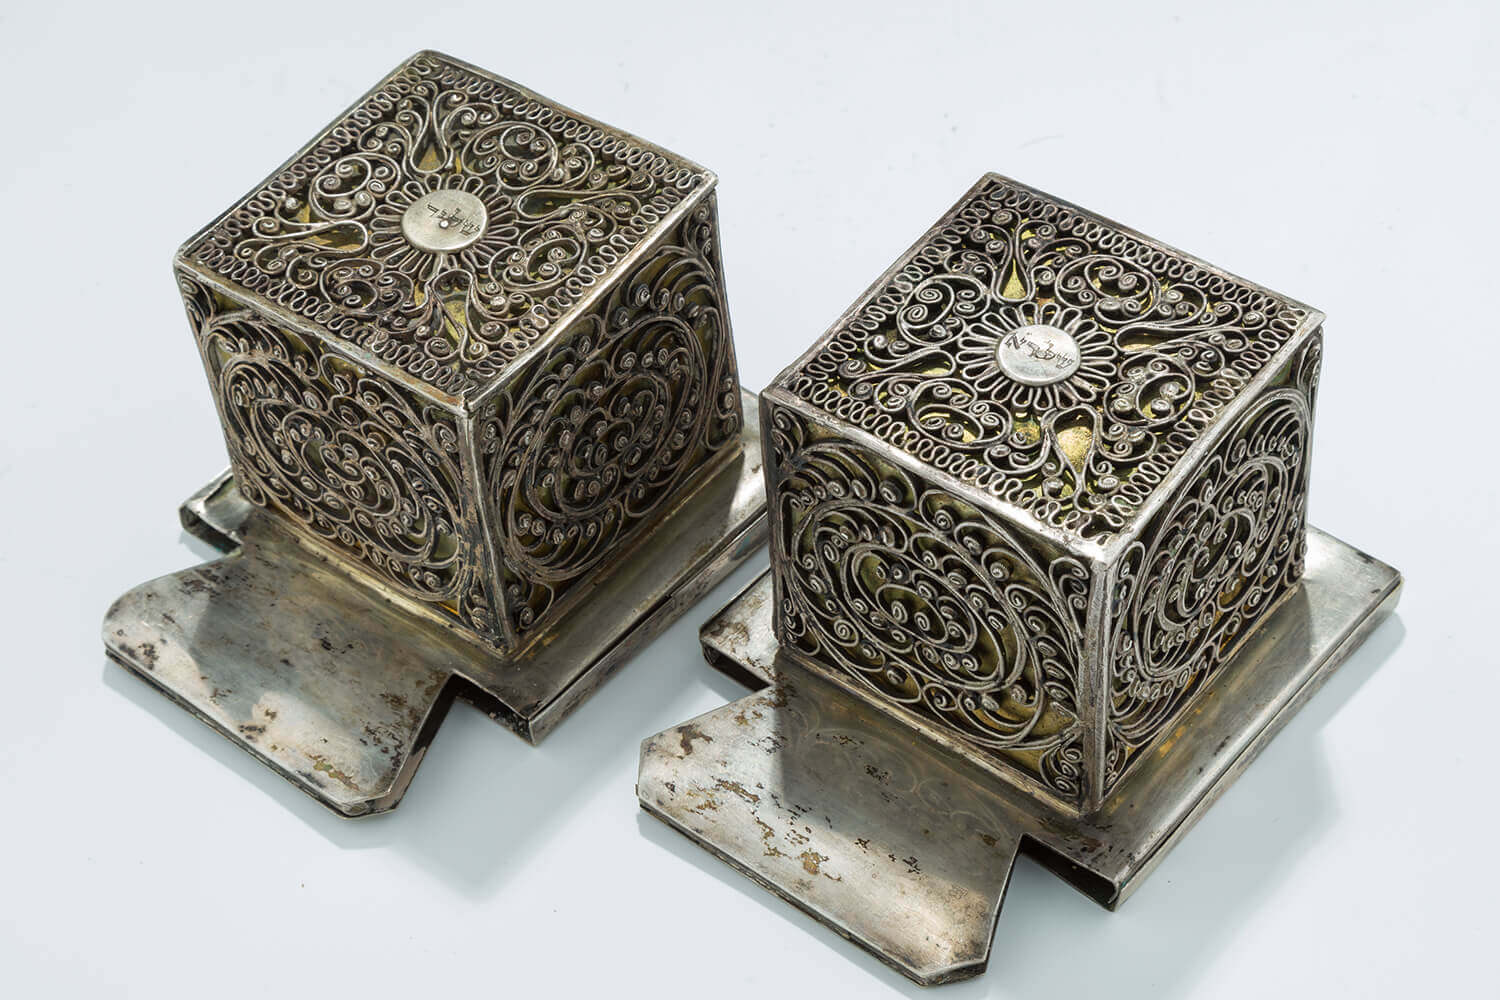 072. A LARGE AND MAGNIFICENT PAIR OF SILVER TEFILLIN CASES